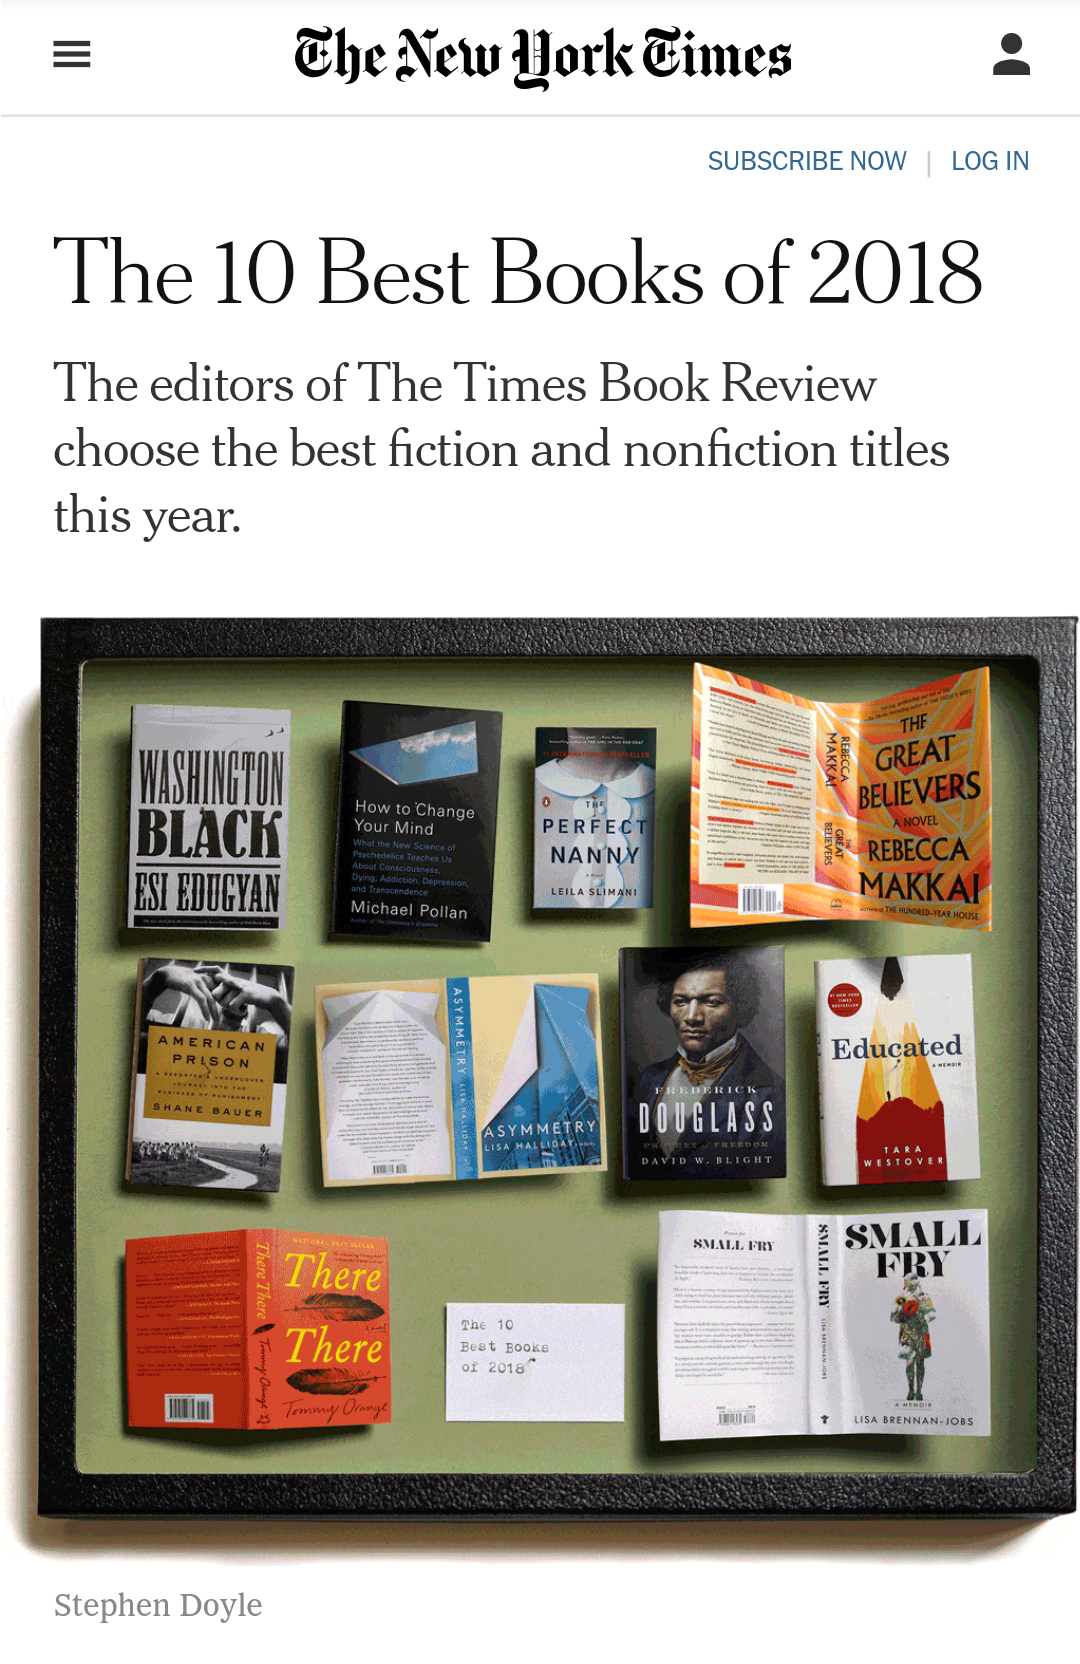 THE NY TIMES BEST BOOKS OF 2018